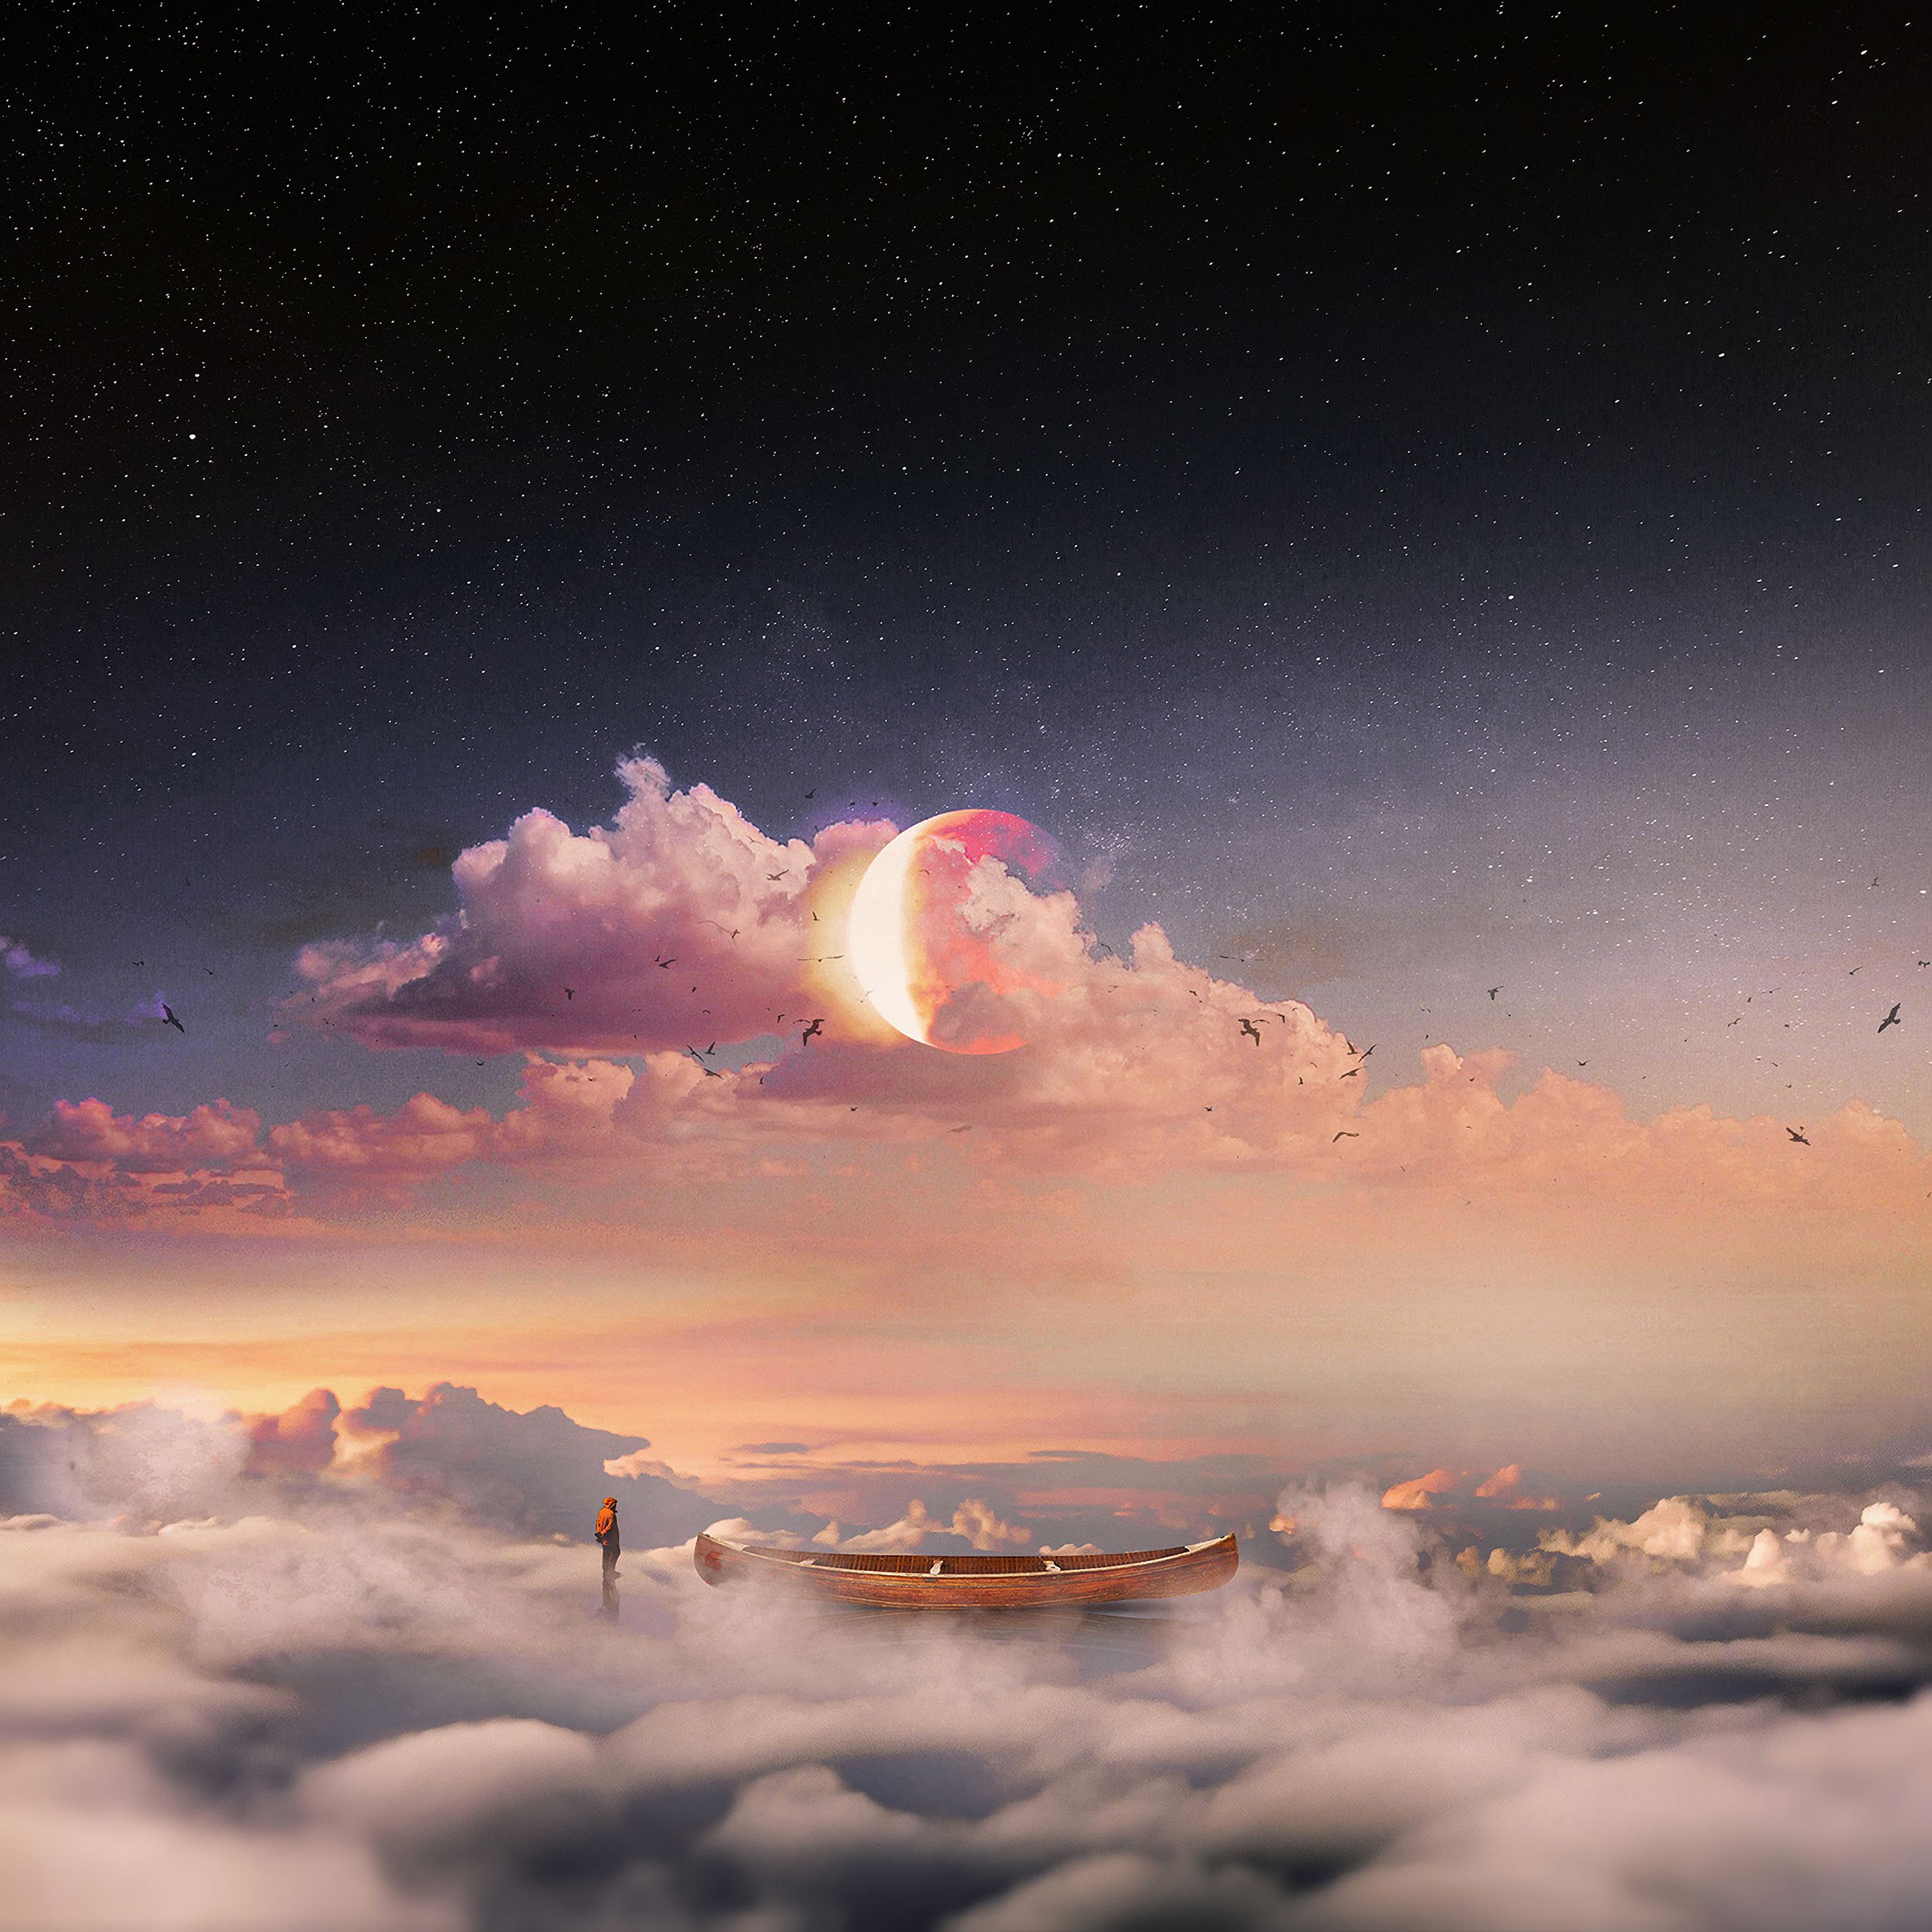 2780x2780 Wallpaper surrealism, boat, clouds, lonely, man, starry sky